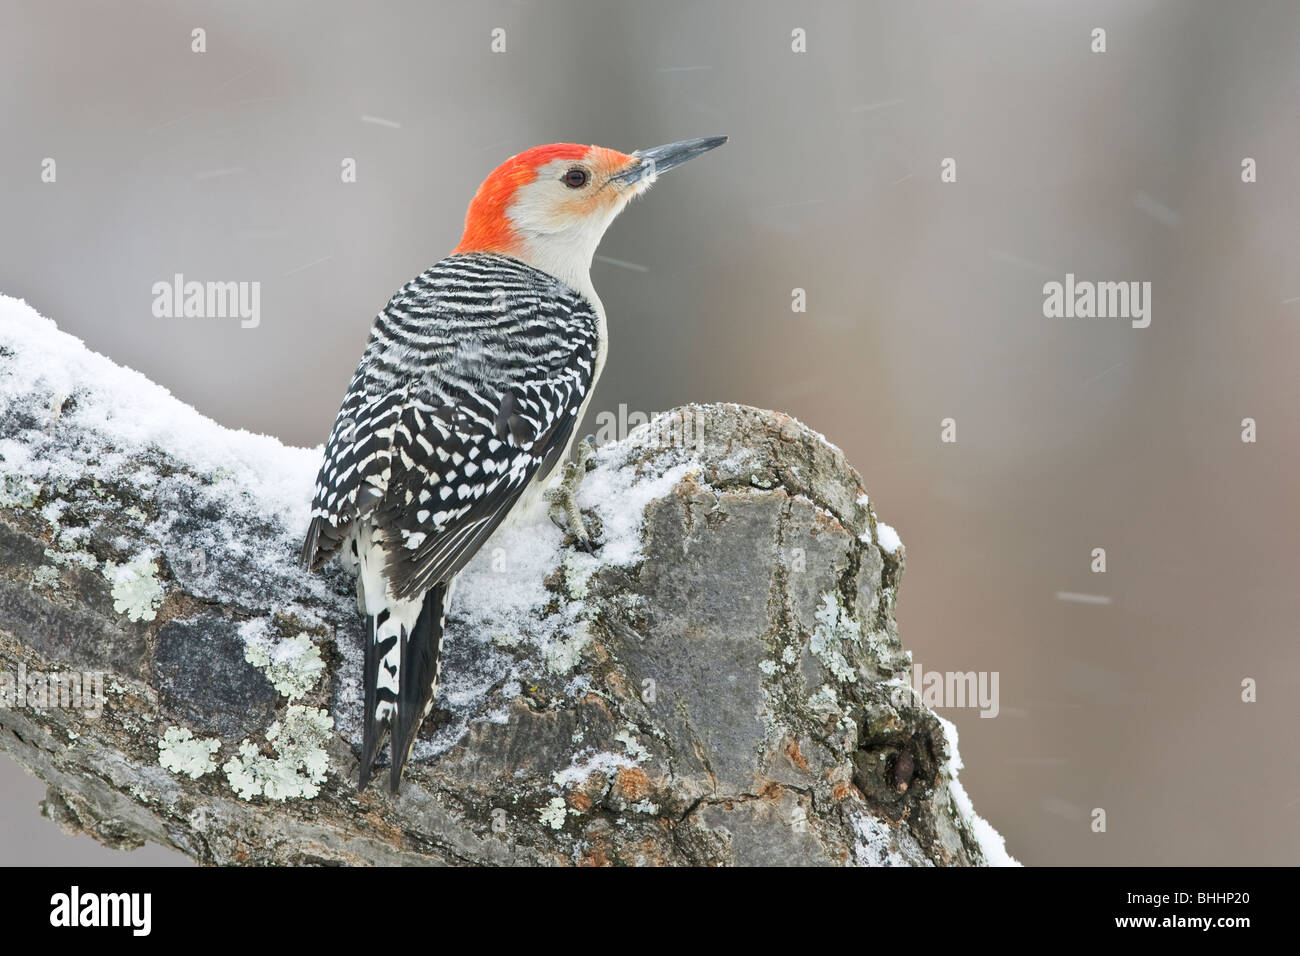 Red-bellied Woodpecker in Snow - Stock Image